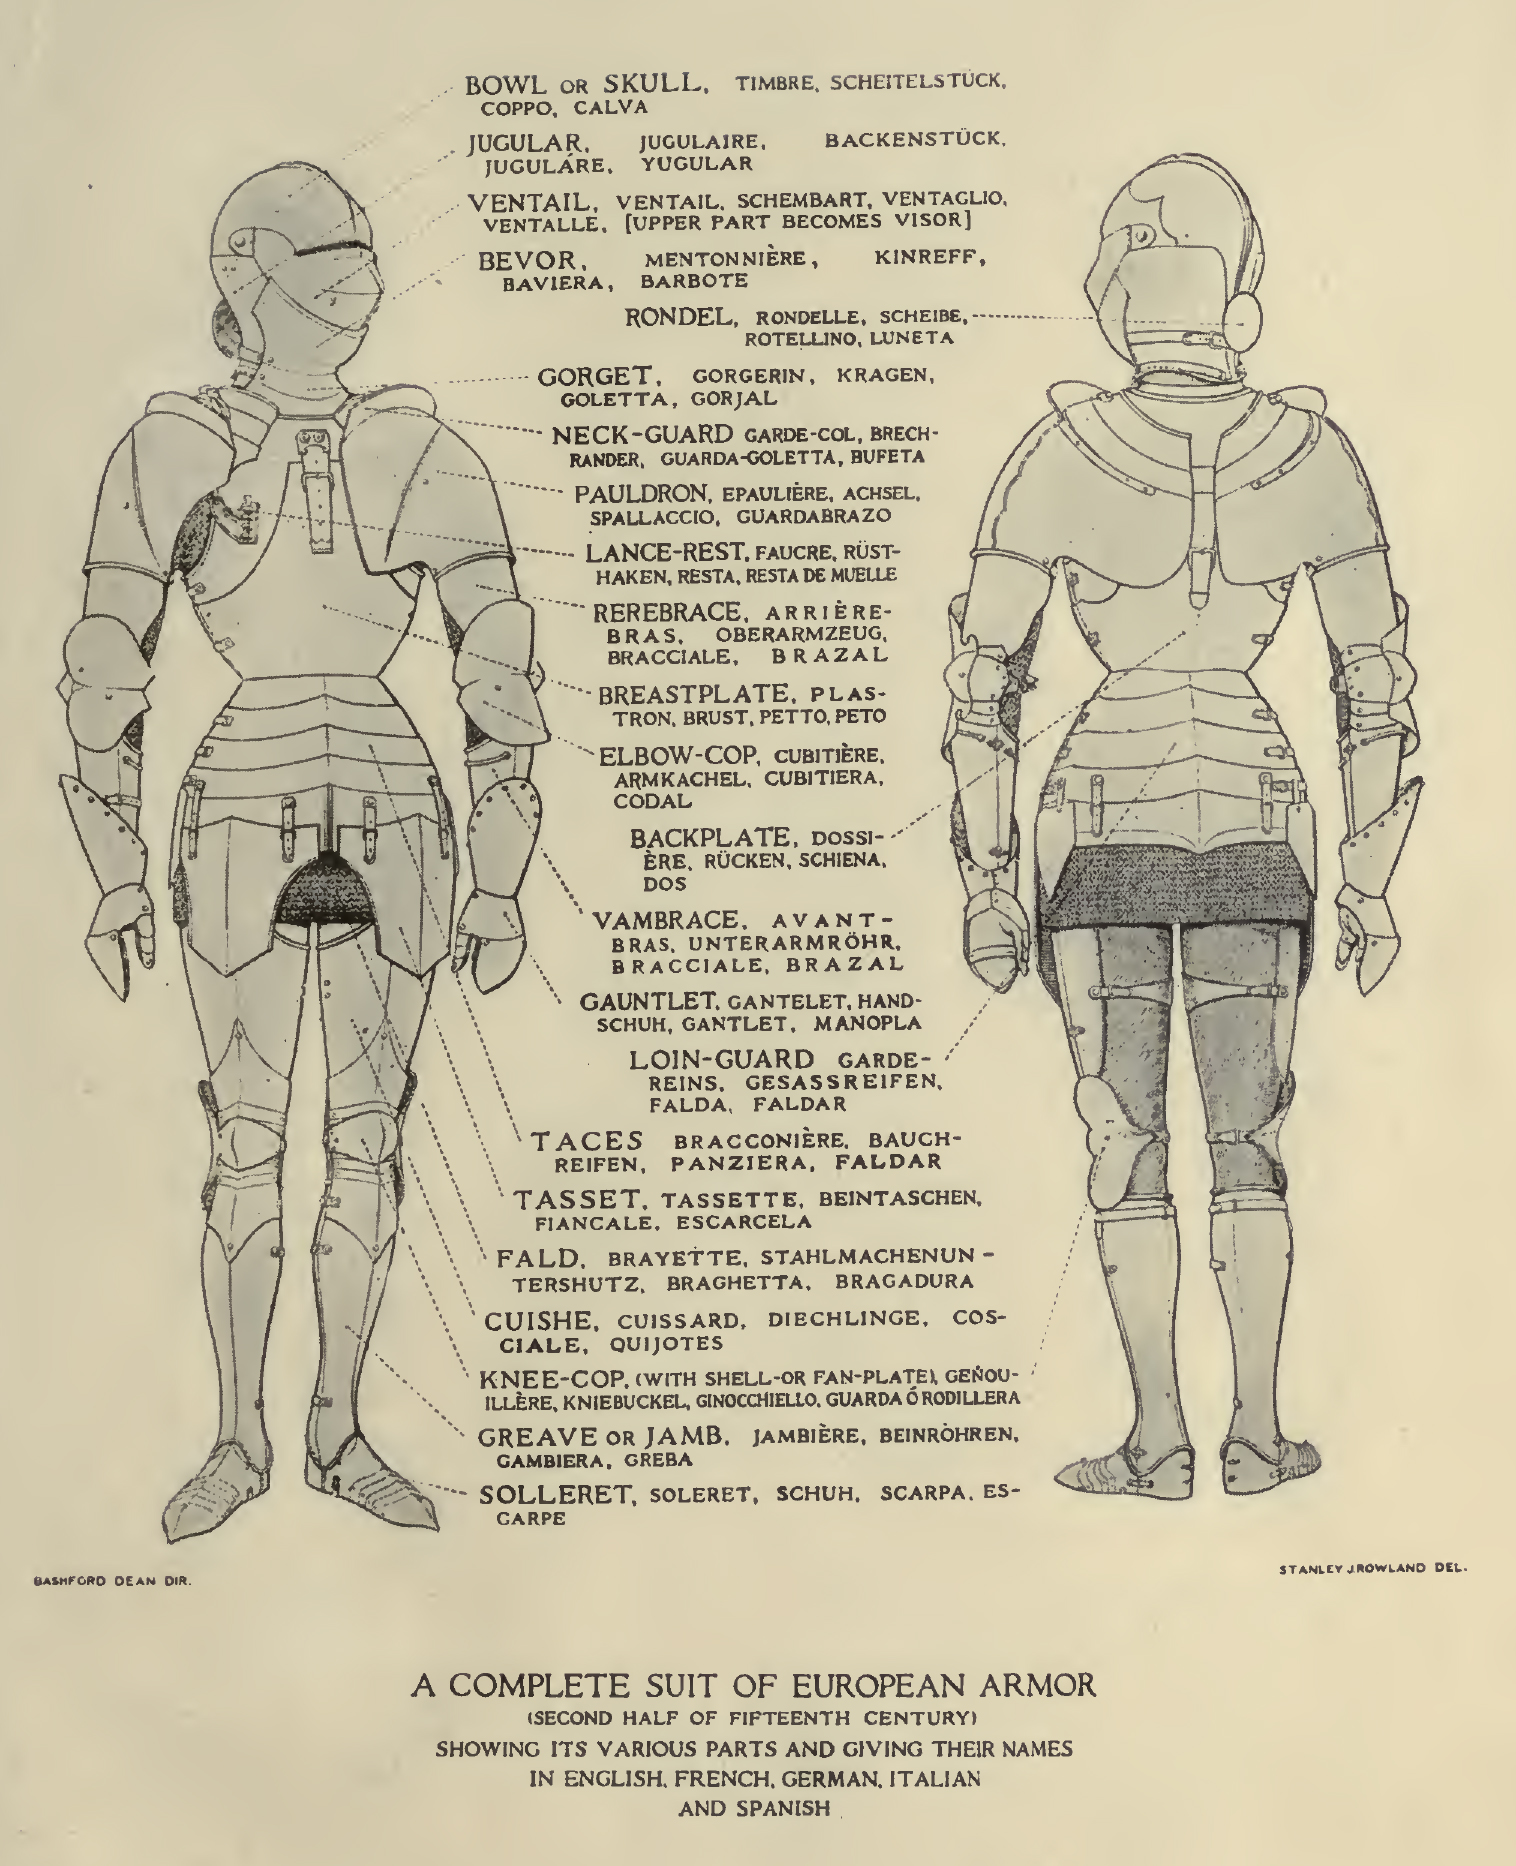 Educational charts of arms and armor. Metropolitan Museum of Art (New York, U.S.A.)                                                                              2MEtX7